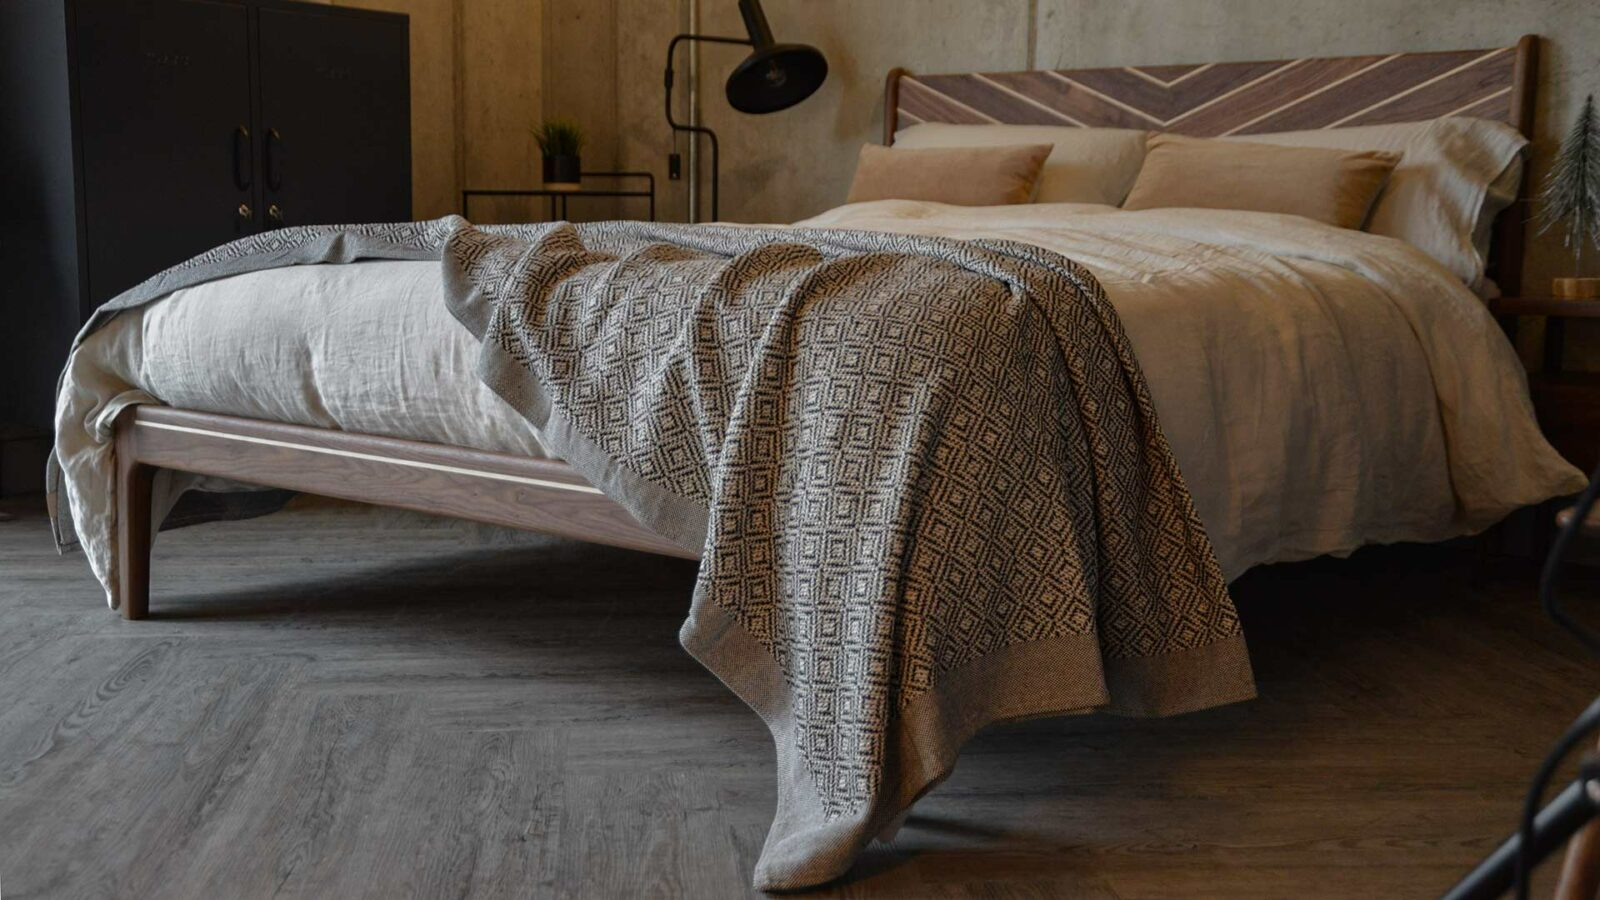 Cotton-rich woven black and white bedspread on our solid wooden special Hoxton bed